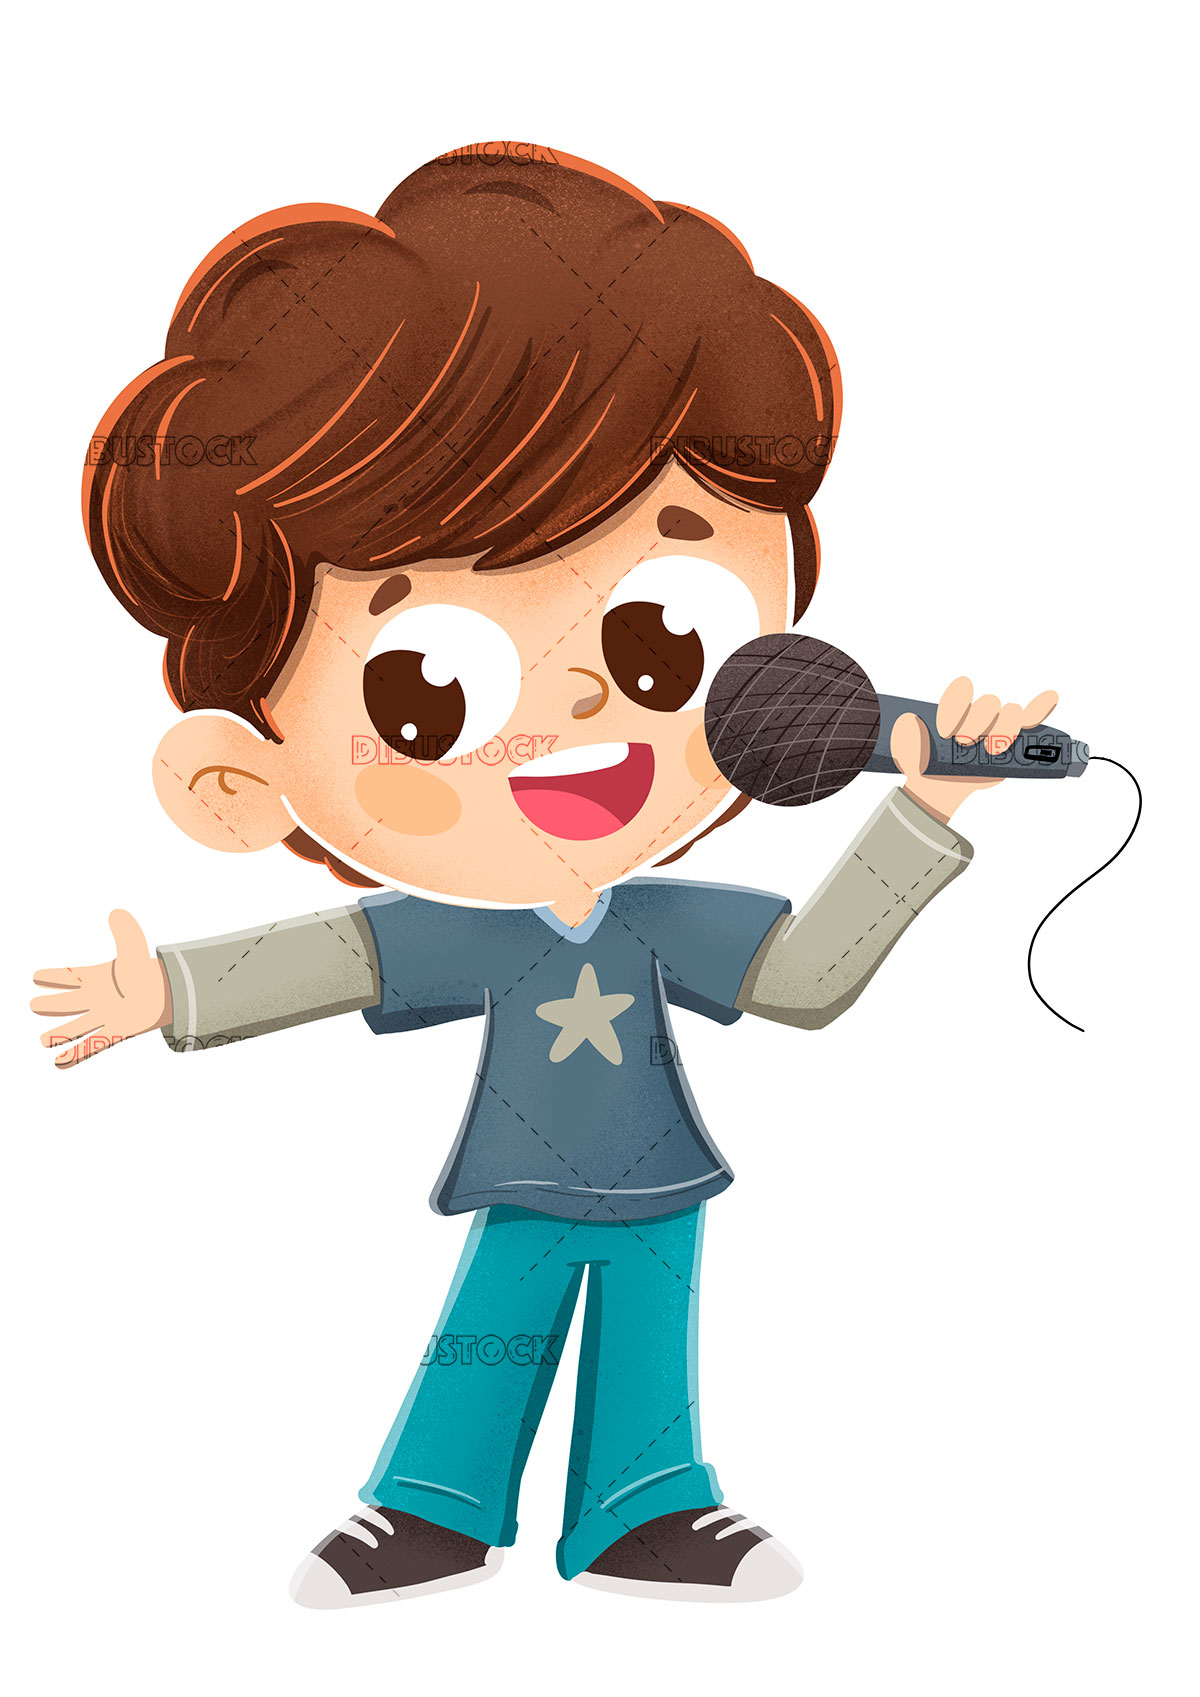 Child singing with a microphone or making a presenting